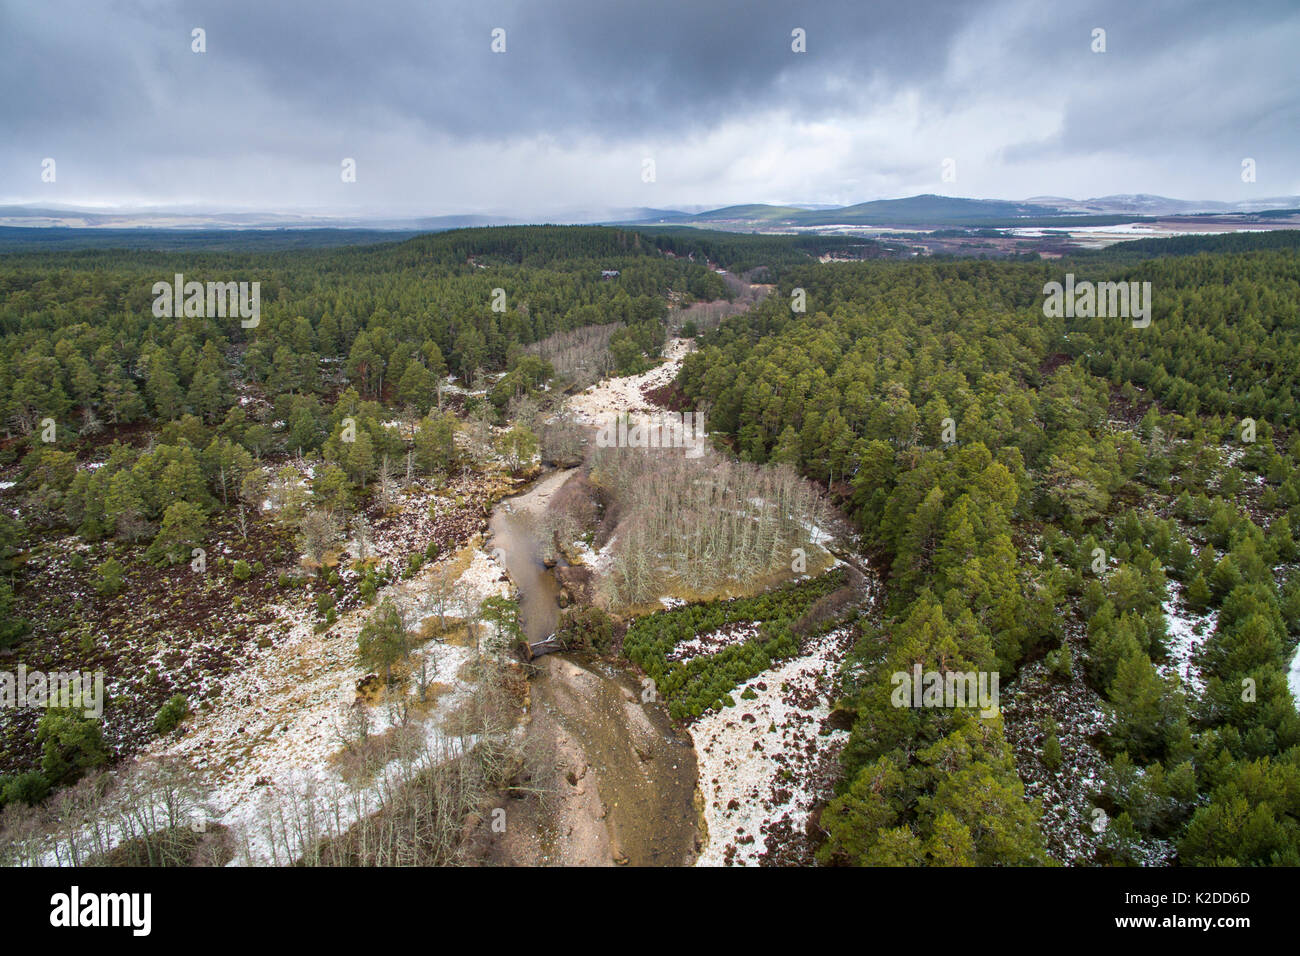 River Nethy flowing through Abernethy forest, Cairngorms National Park, Scotland, UK, March 2016. - Stock Image